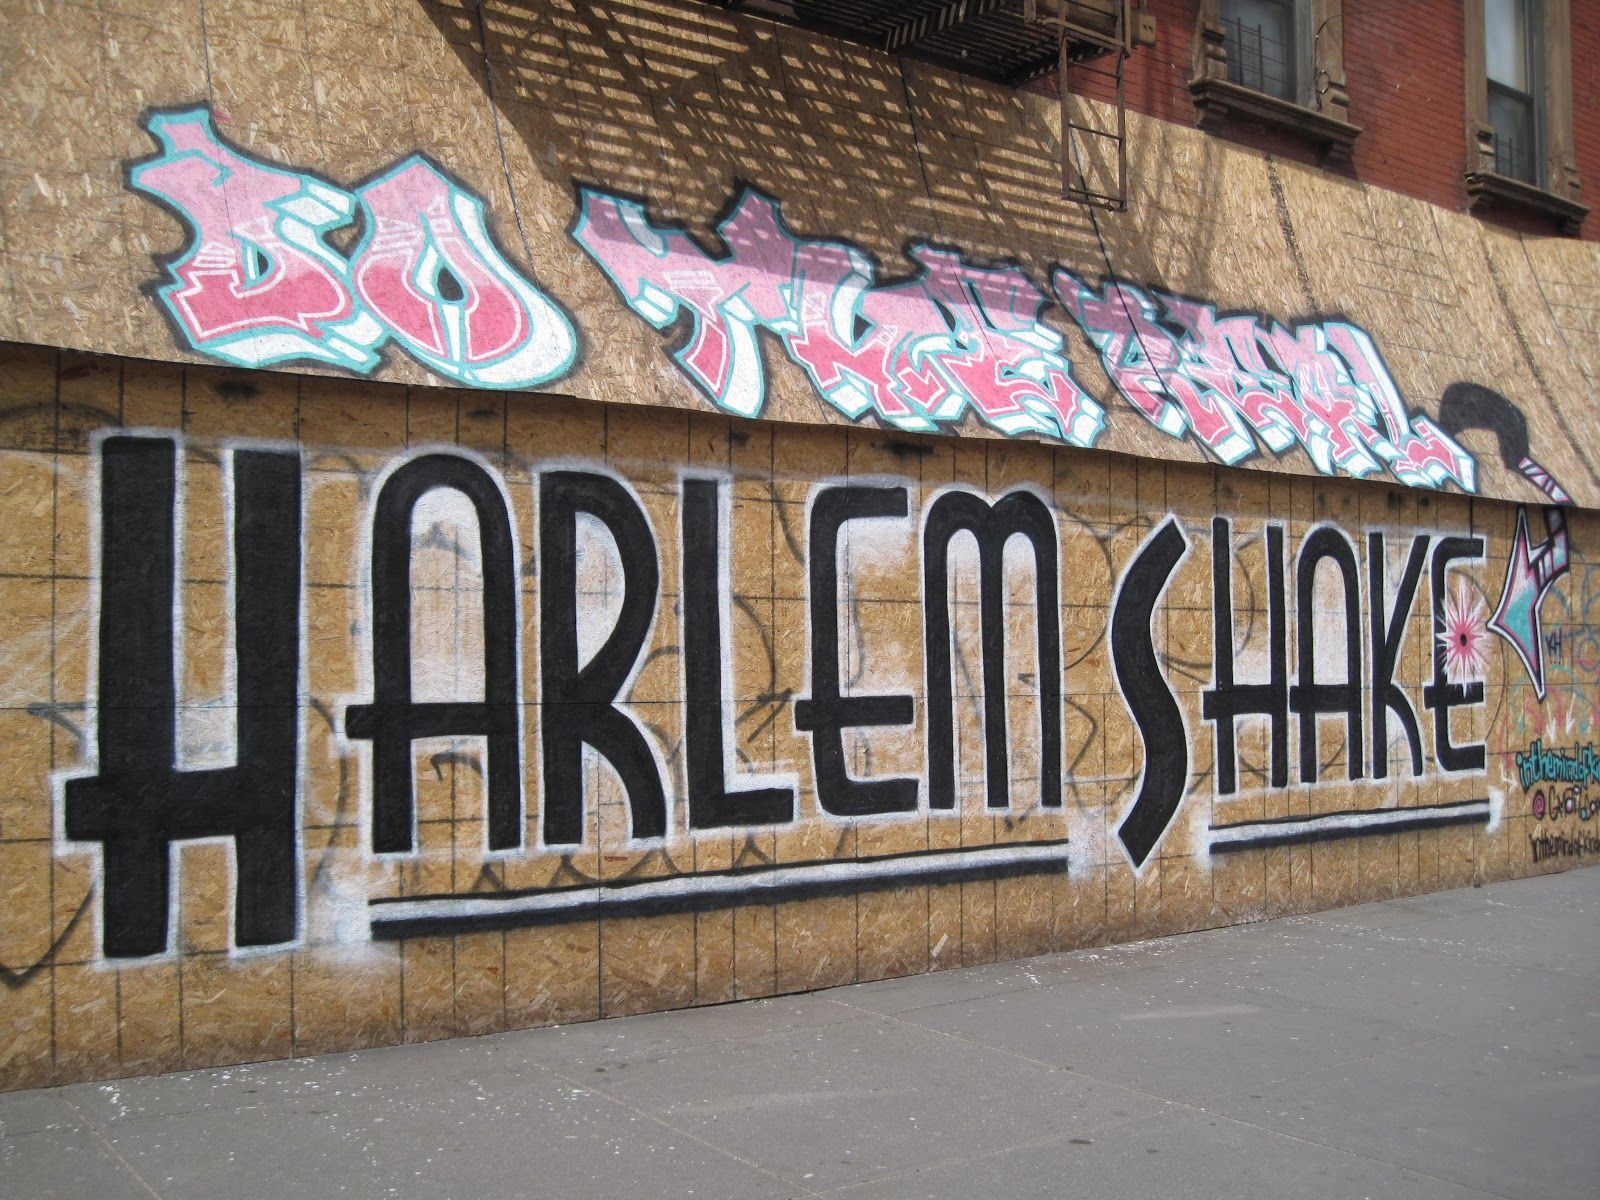 Graffiti In Harlem Street Art Love Street Wall Art Do The Harlem Shake